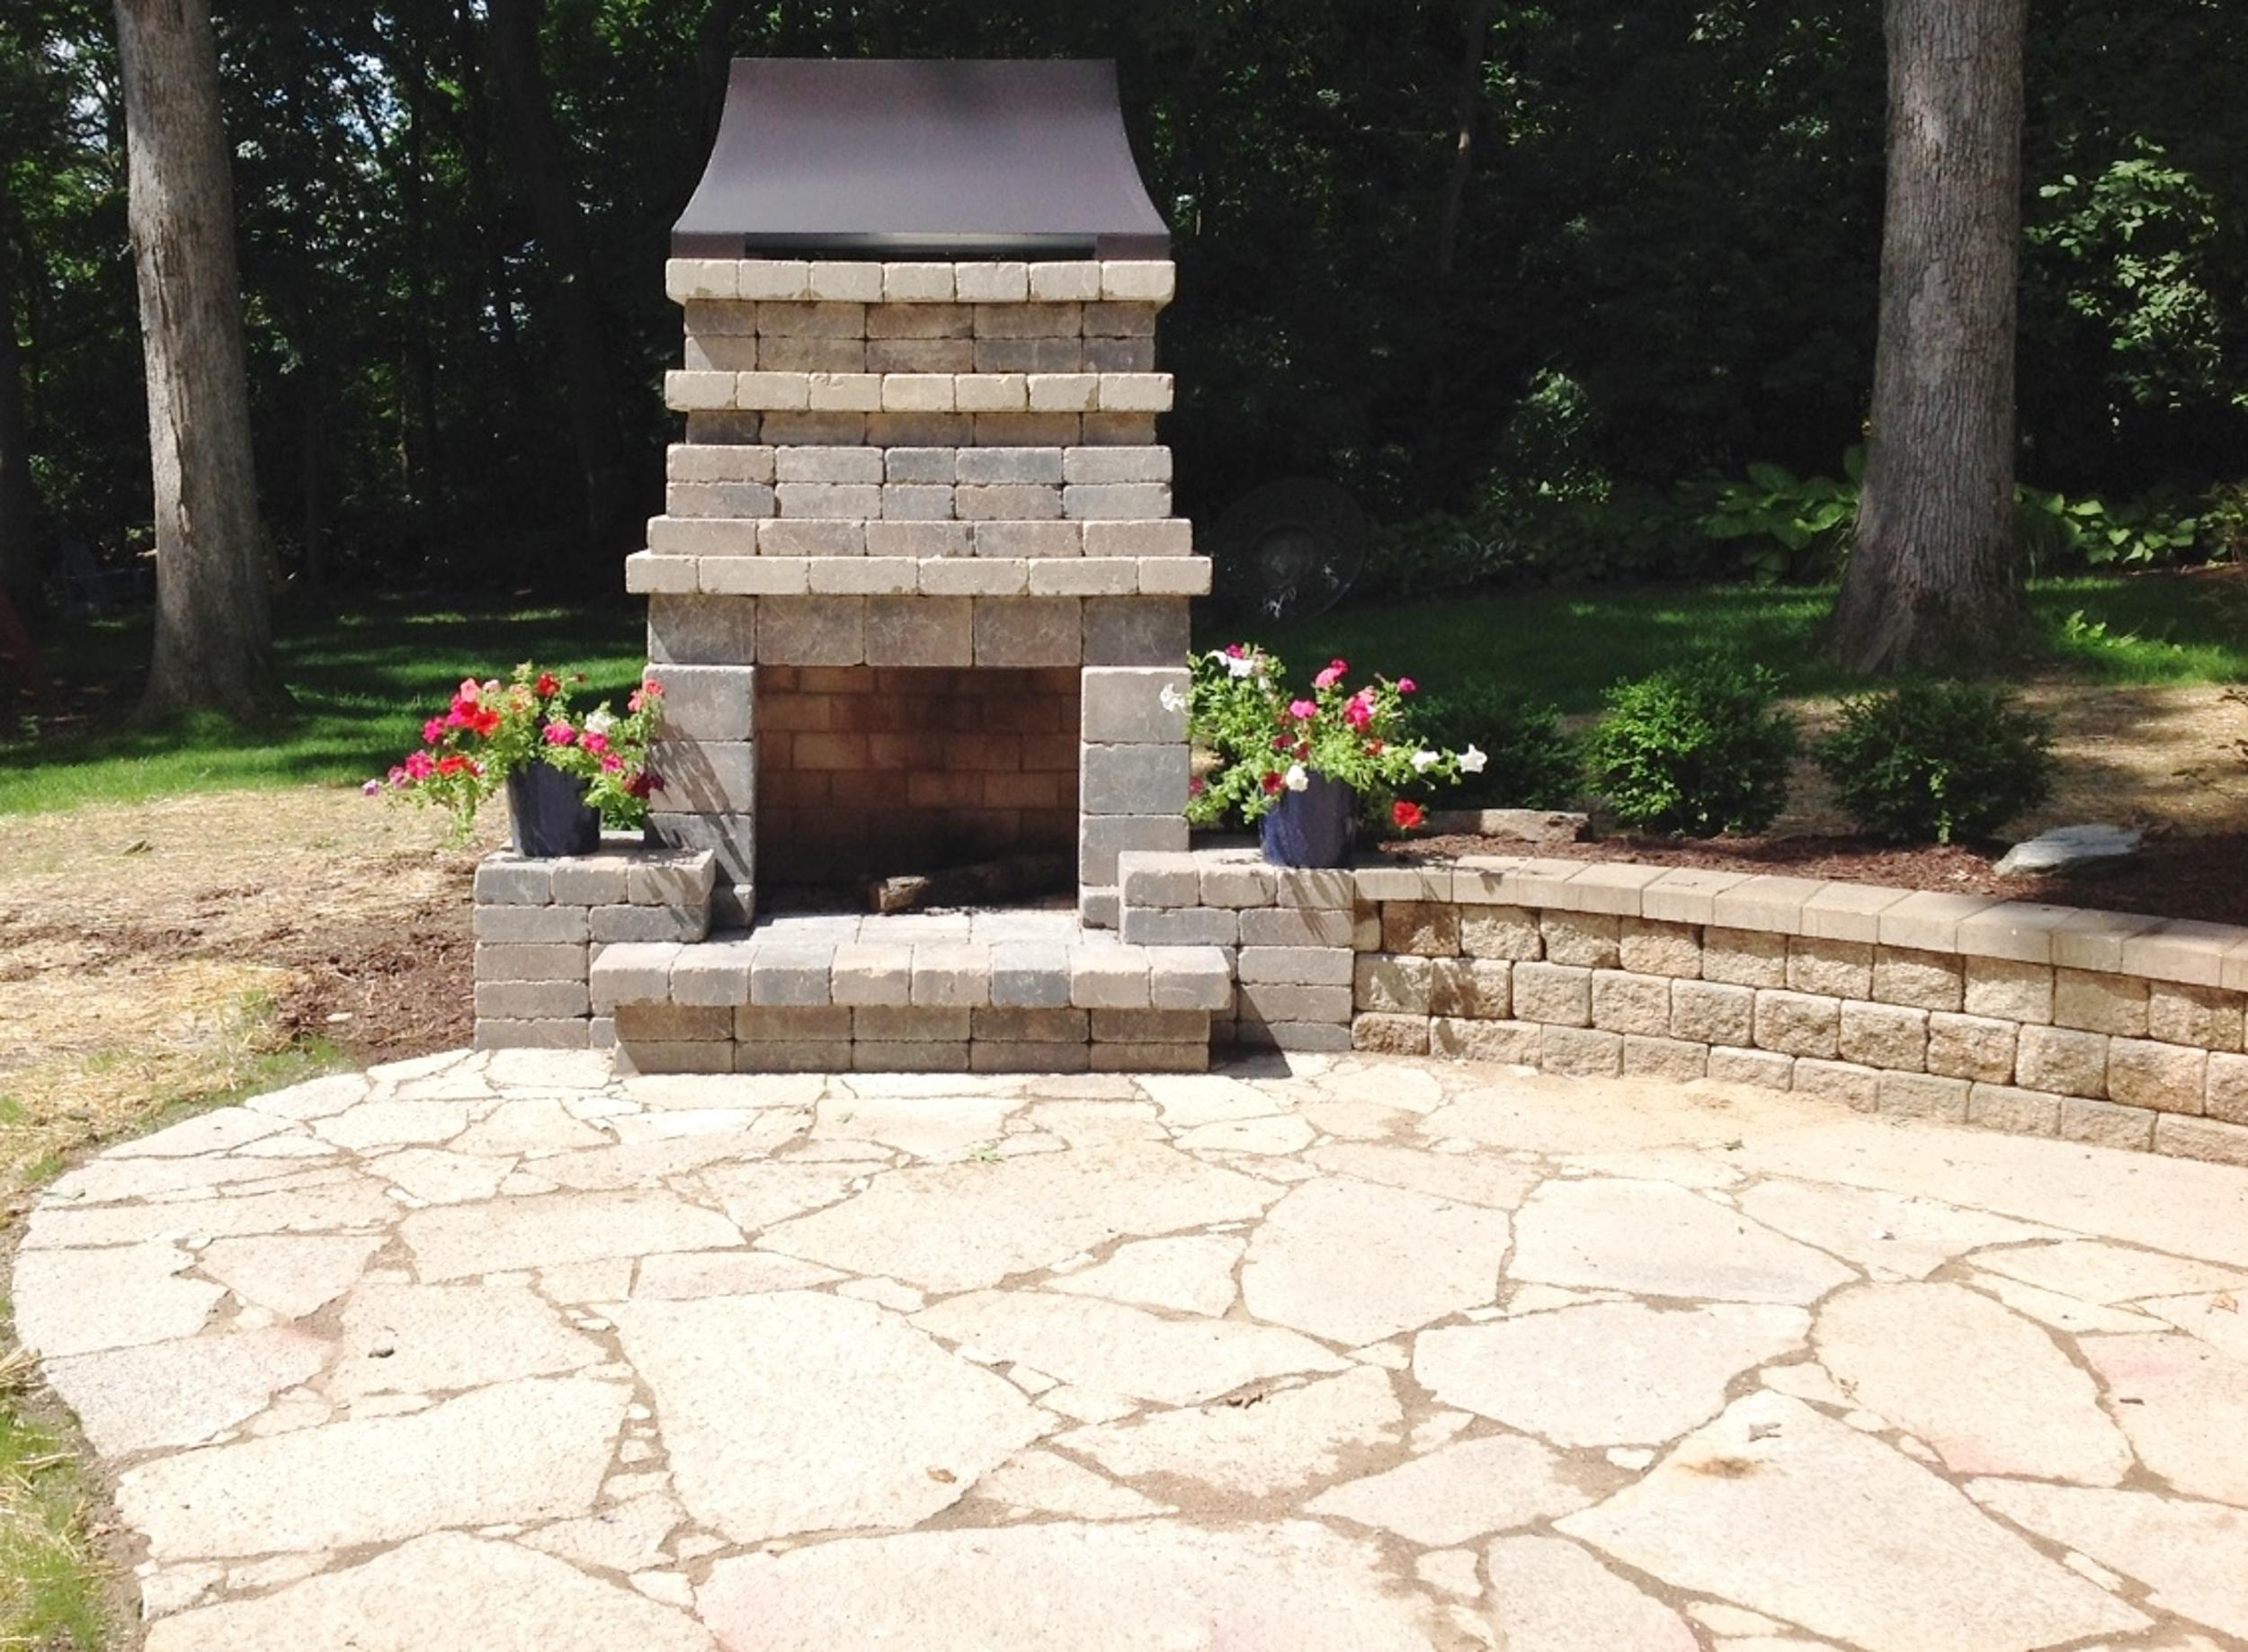 Cozy Outdoor Fireplace: Fireplace after